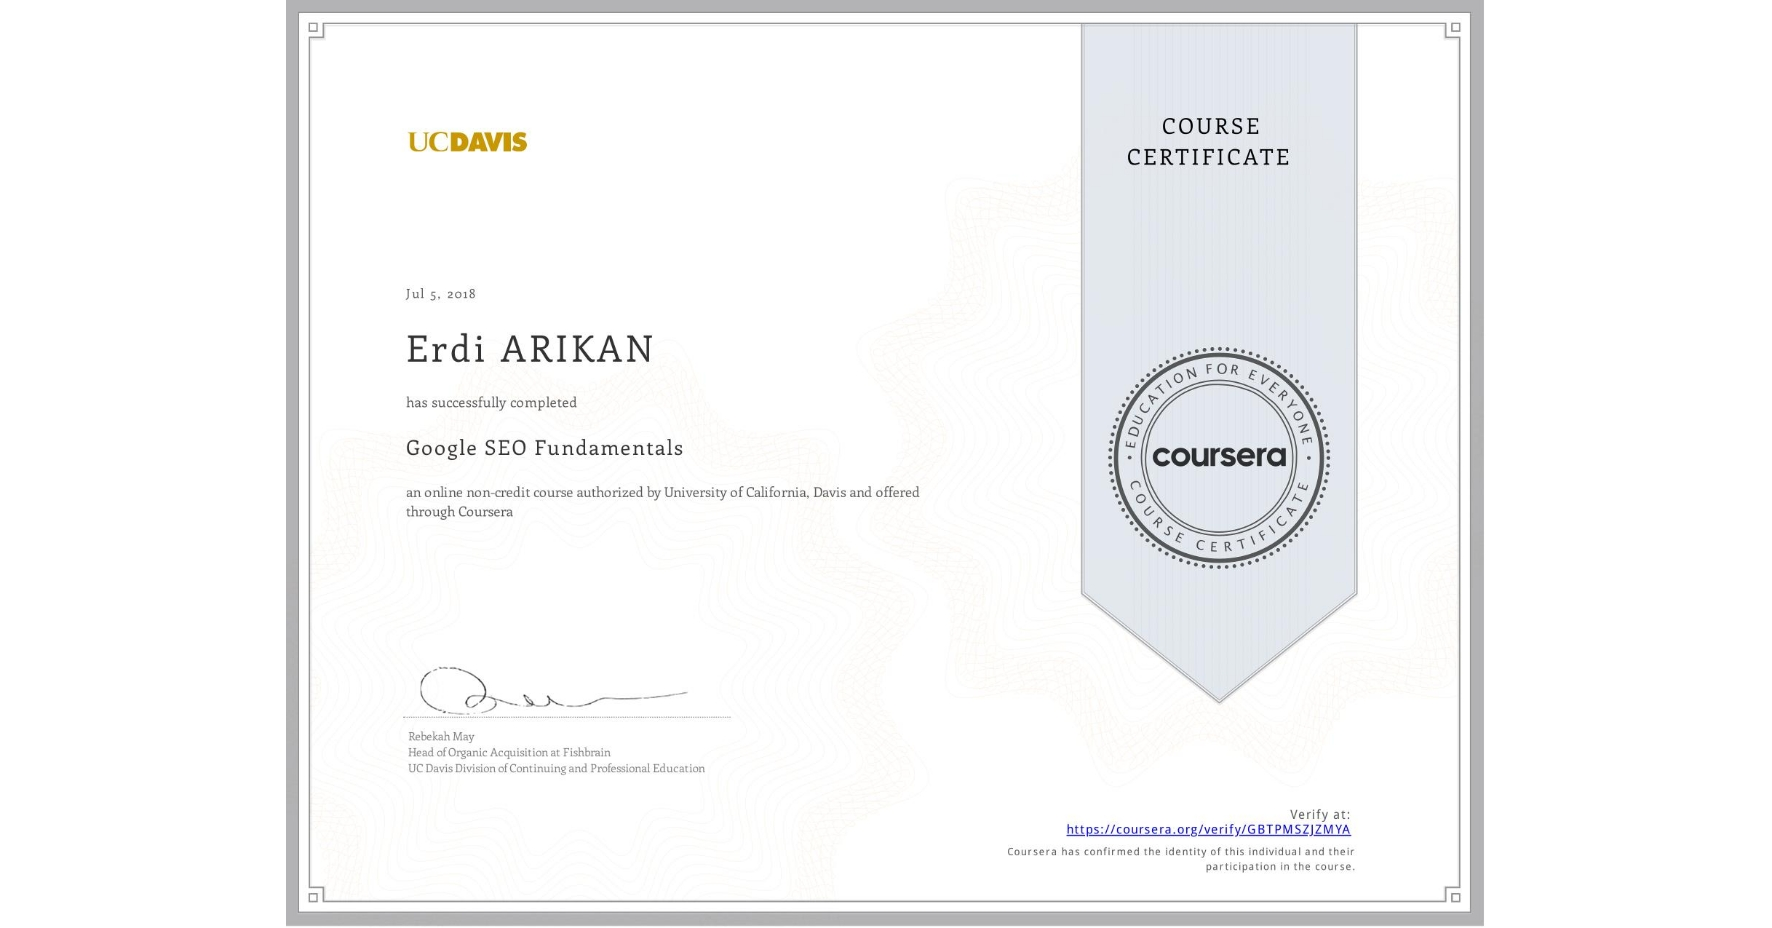 View certificate for Erdi ARIKAN, Search Engine Optimization Fundamentals, an online non-credit course authorized by University of California, Davis and offered through Coursera